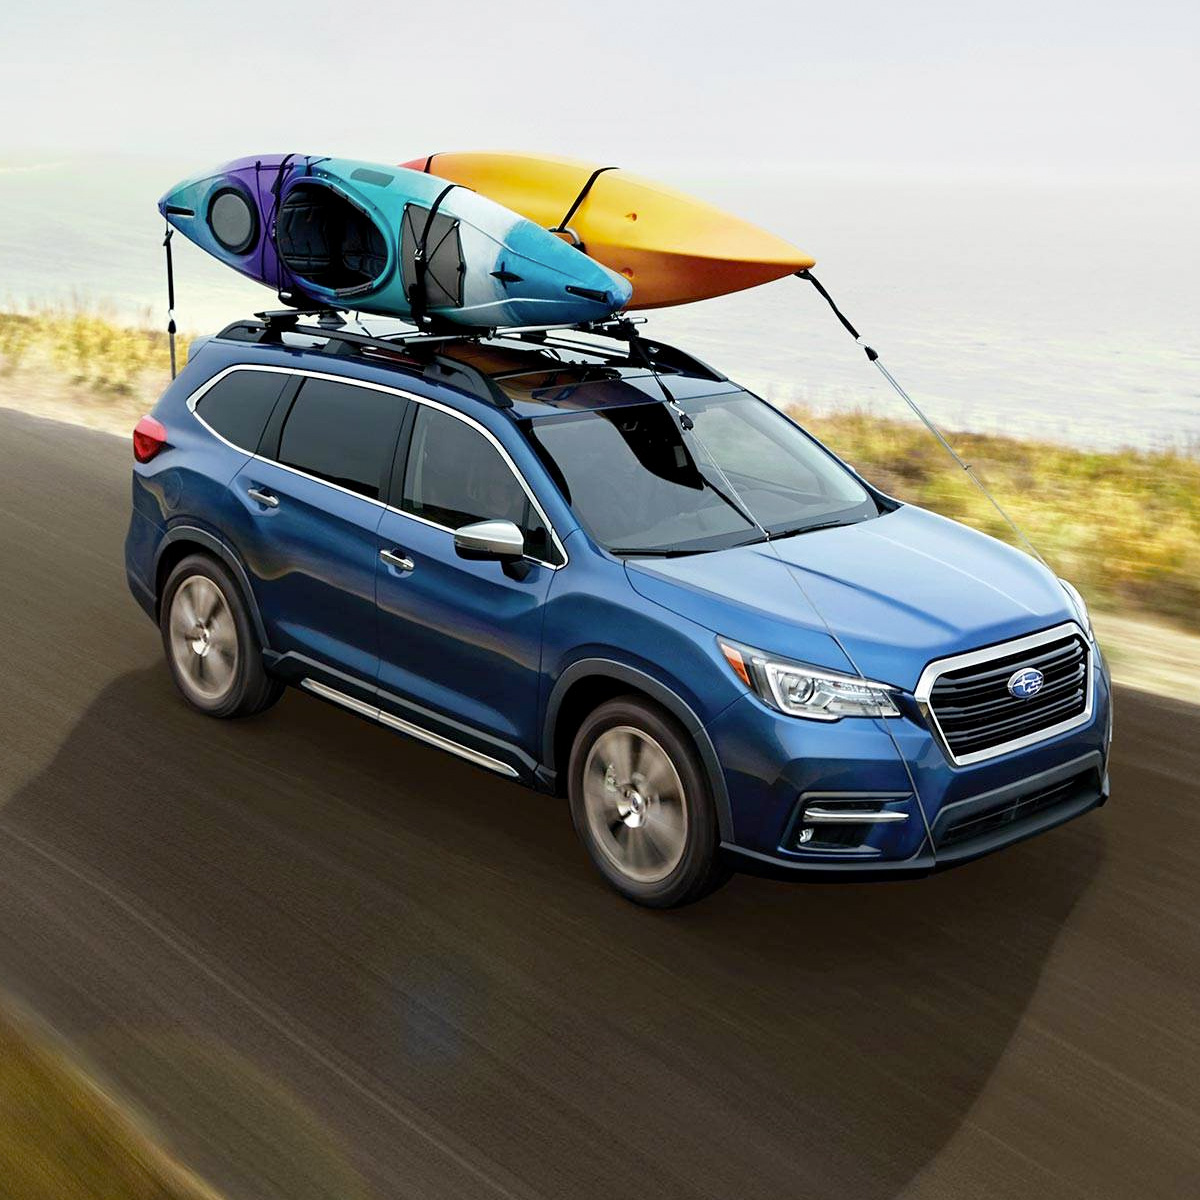 side profile of subaru ascent in blue color carrying kayaks on top of the roof racks driving on a road next to a beach